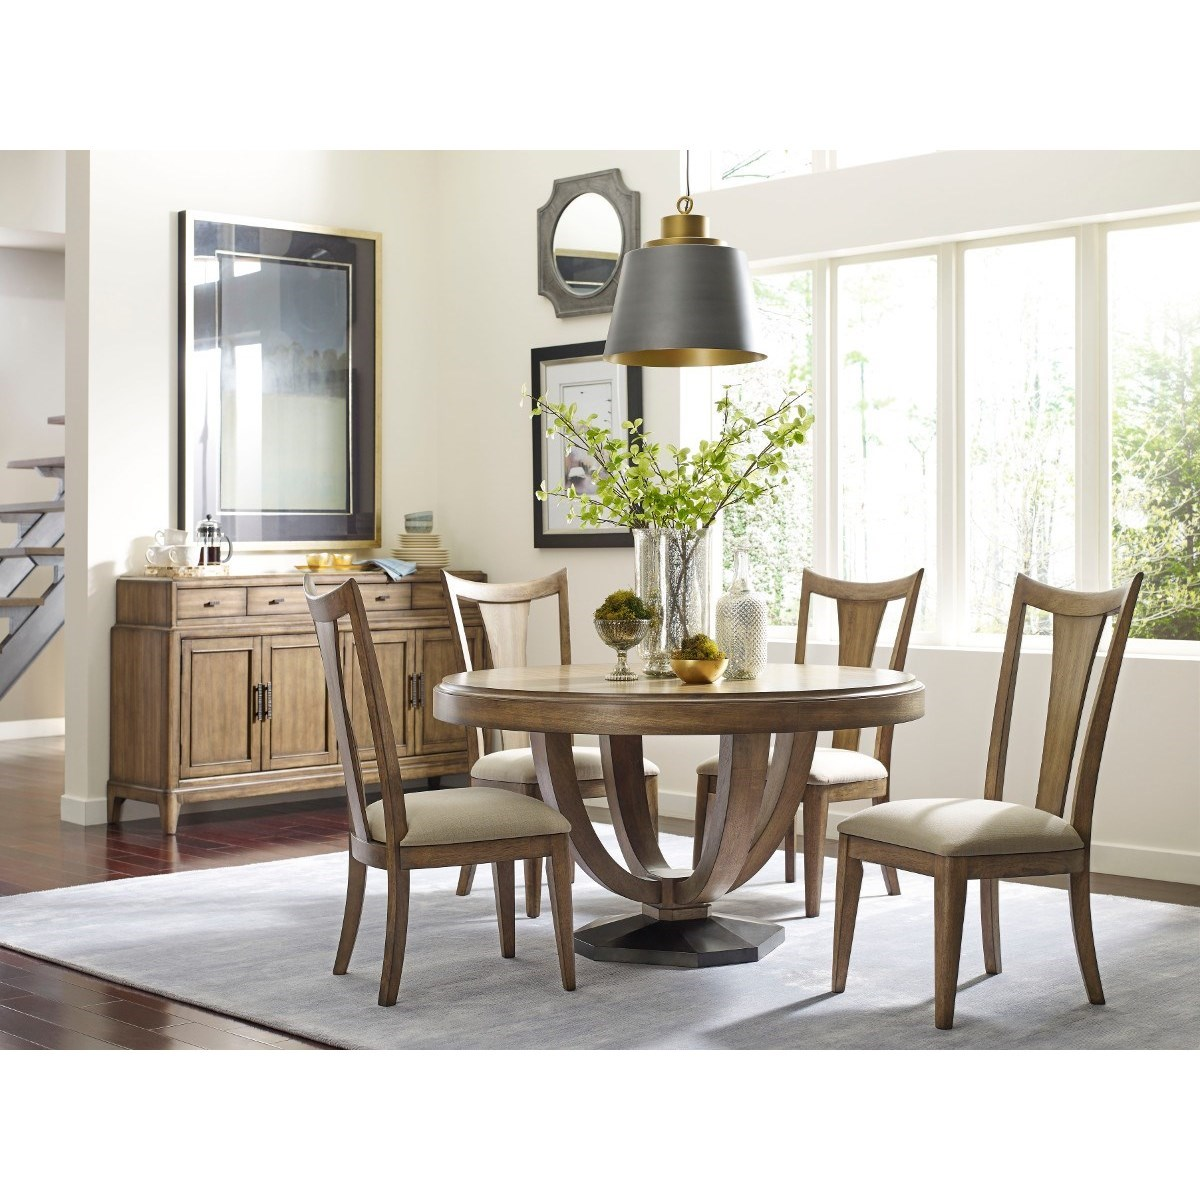 American drew evoke casual dining room group for Casual dining room furniture